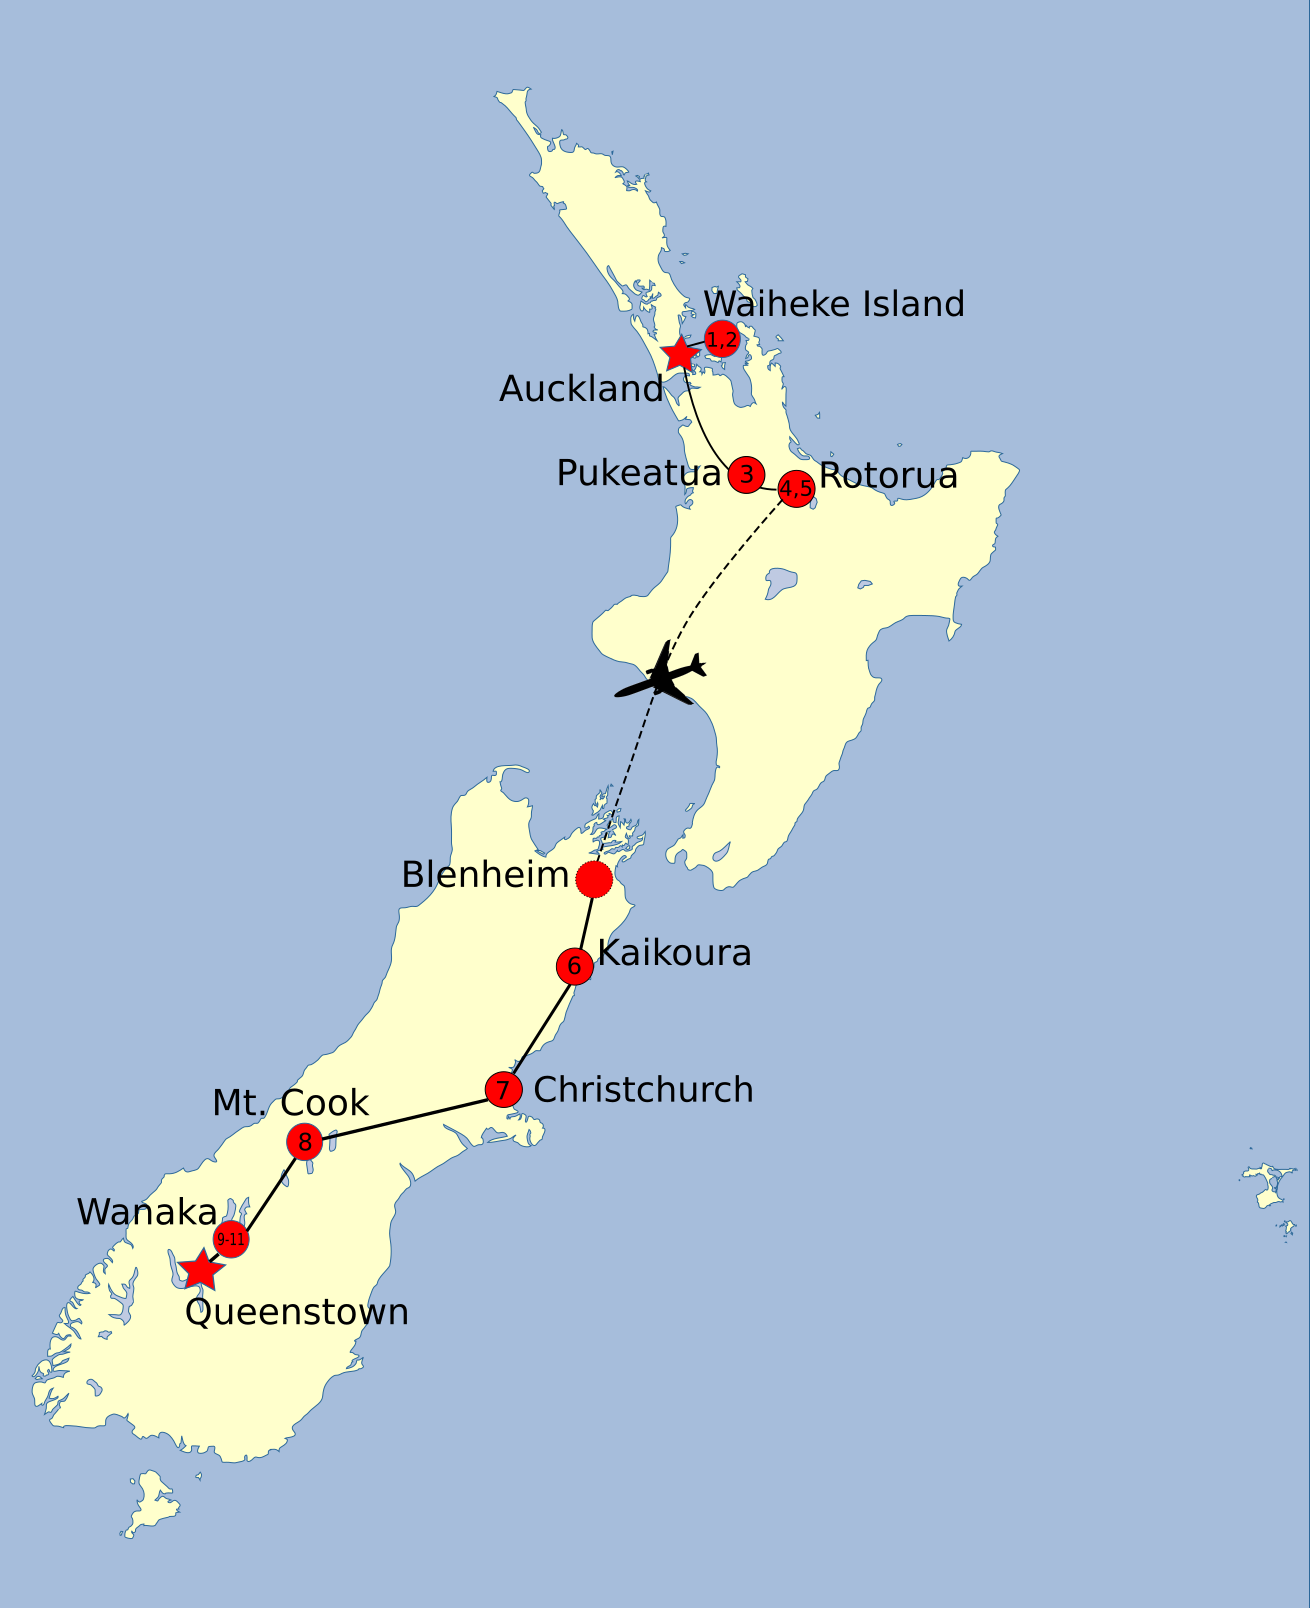 Rotorua New Zealand Map.Highlights And Hot Spots Tour New Zealand Awaits